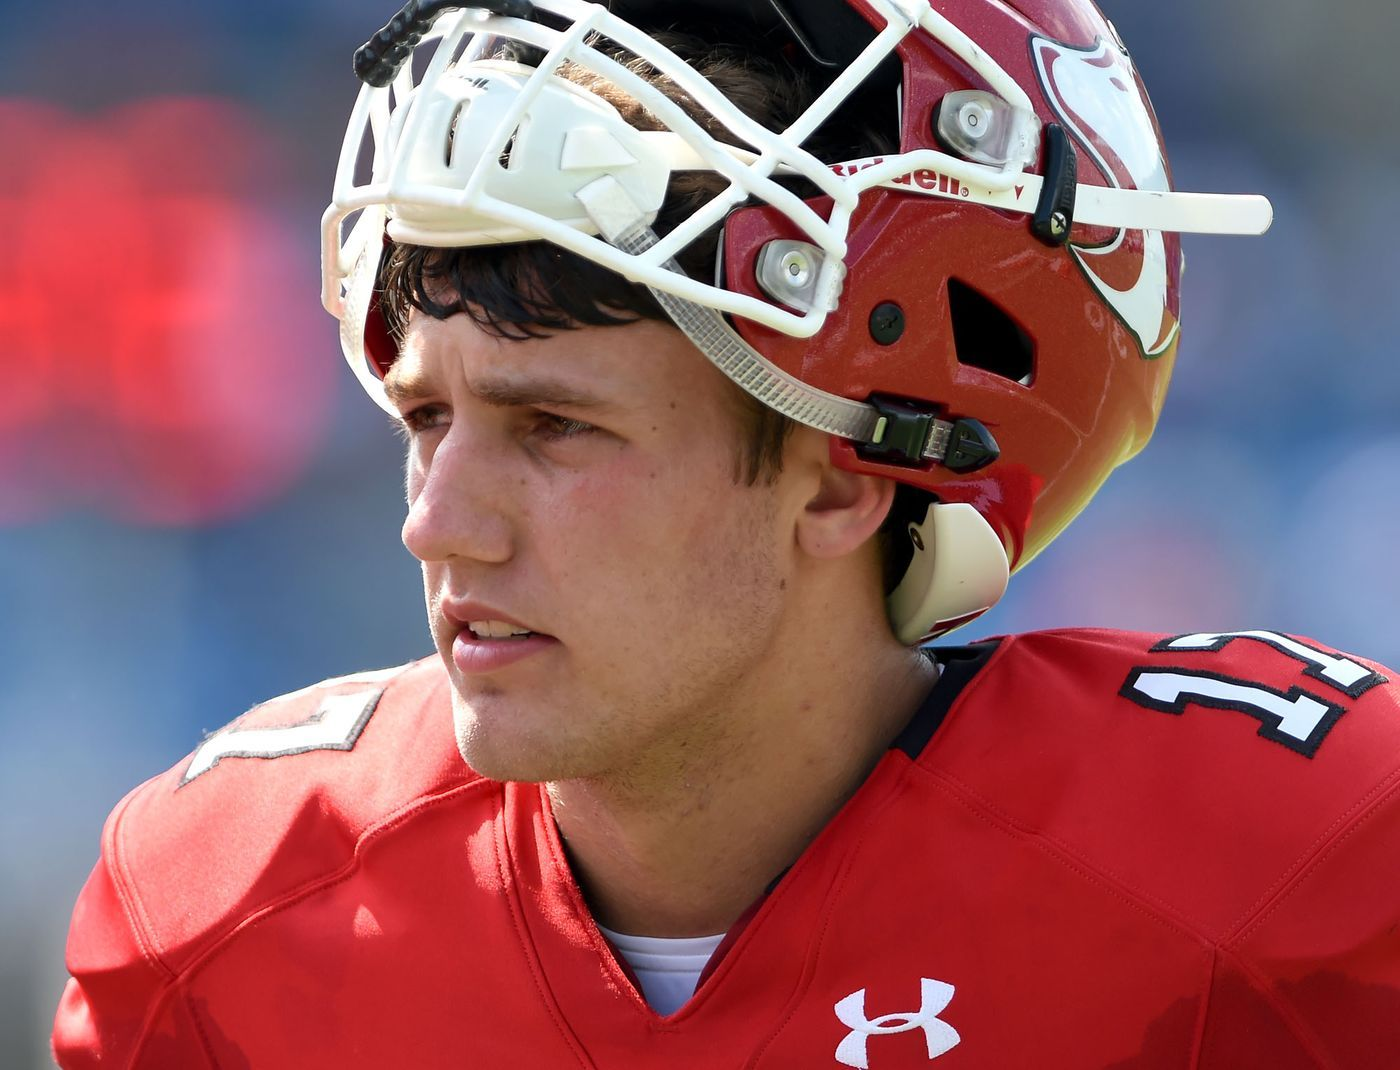 Great Grandson Of Paul Bryant Begins Lifelong Dream With